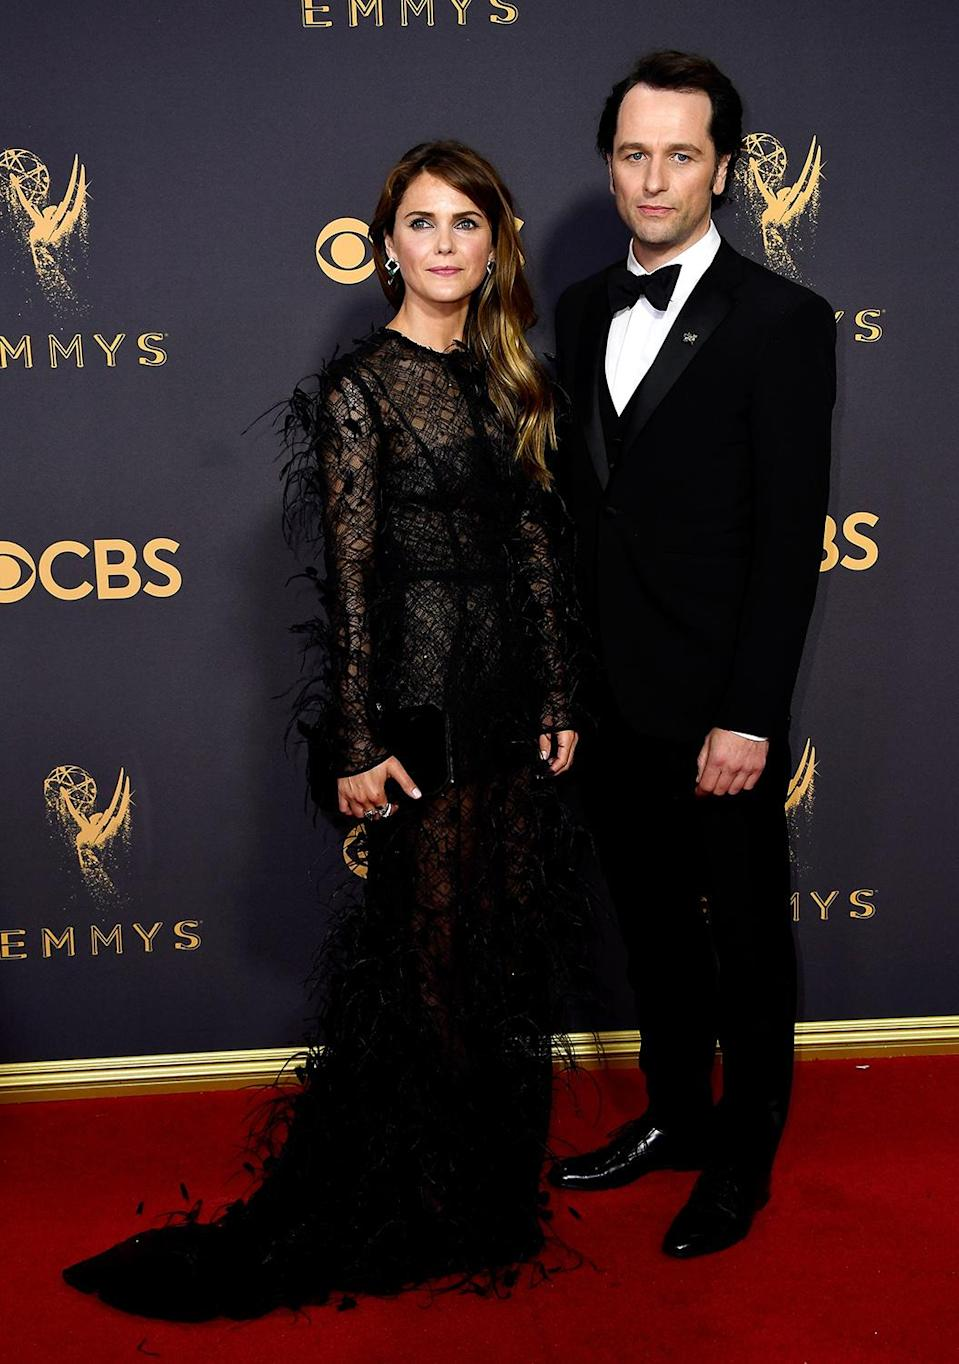 <p>Keri Russell (L) and Matthew Rhys attend the 69th Annual Primetime Emmy Awards on September 17, 2017. (Photo: Getty Images) </p>